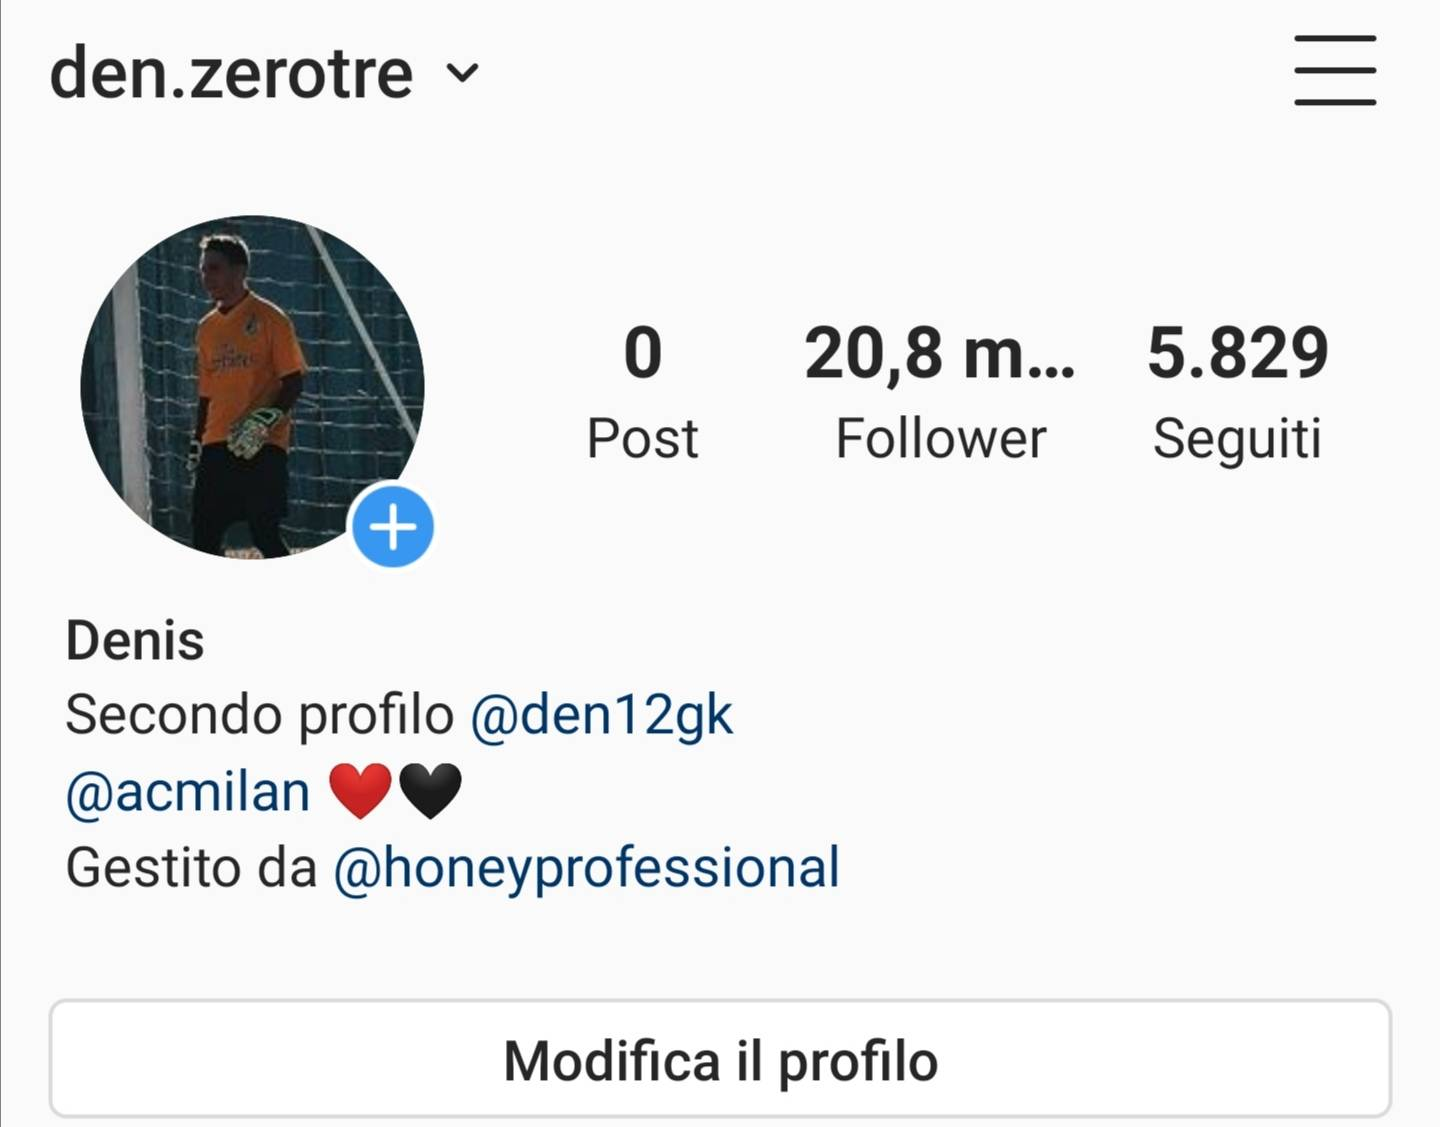 Ho 20.8 k followers, scambio pubblicitá con stories